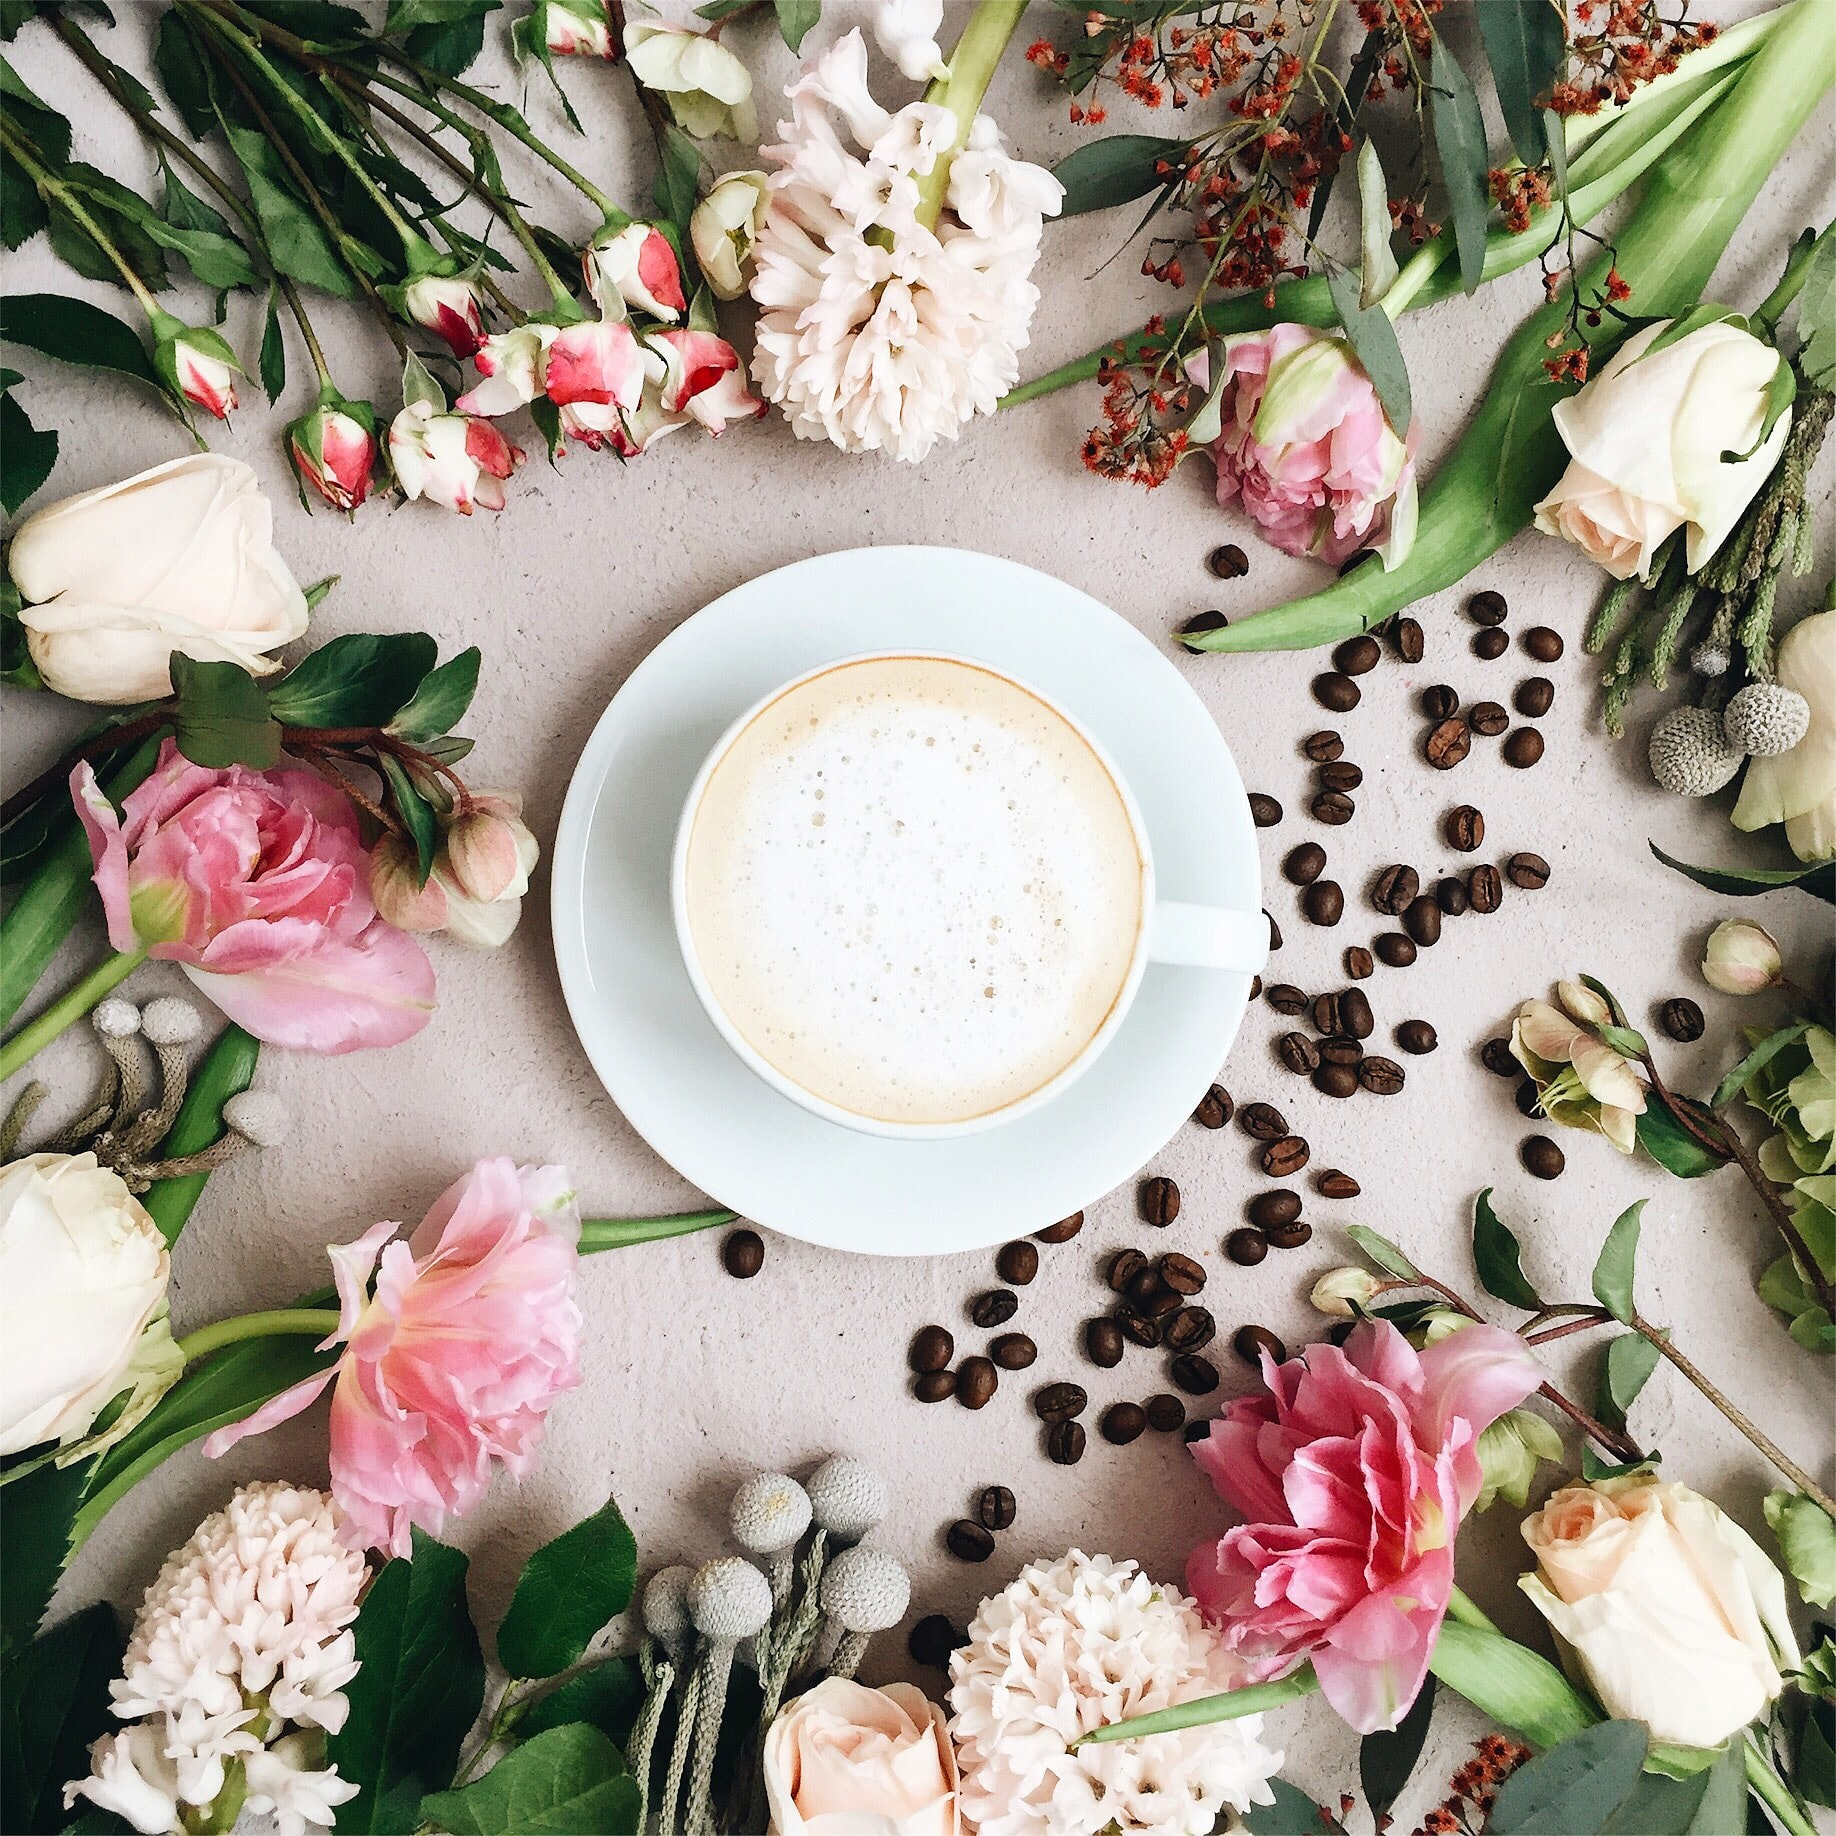 cappuccino filled white ceramic coffee cup on white ceramic saucer surrounded by assorted-type of flowers and coffee beans